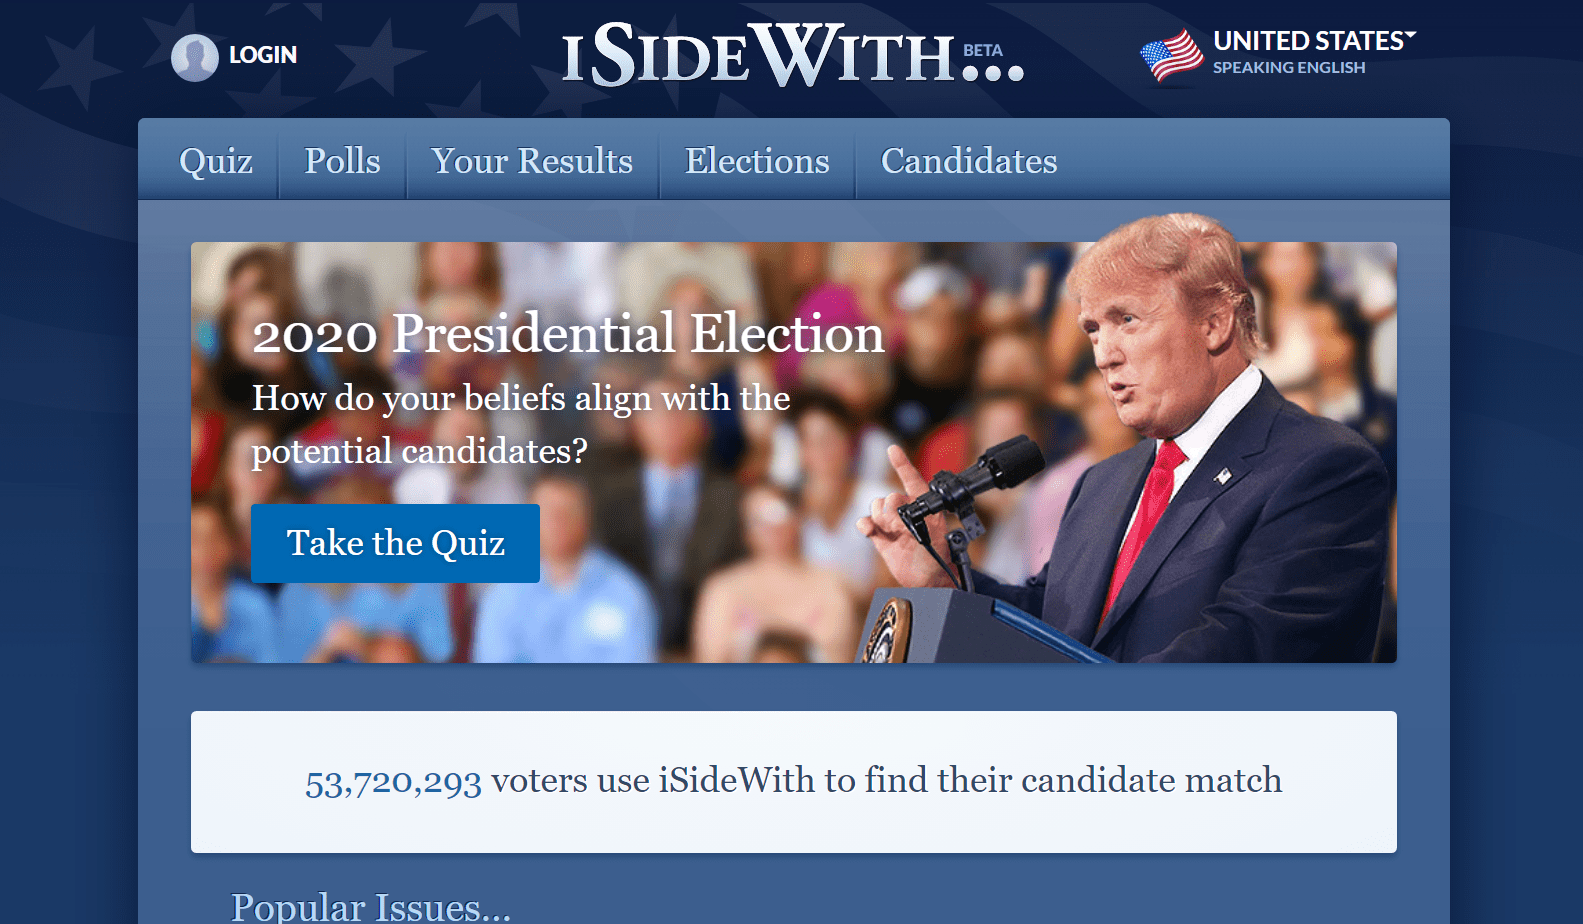 What is ISideWith's Bias?